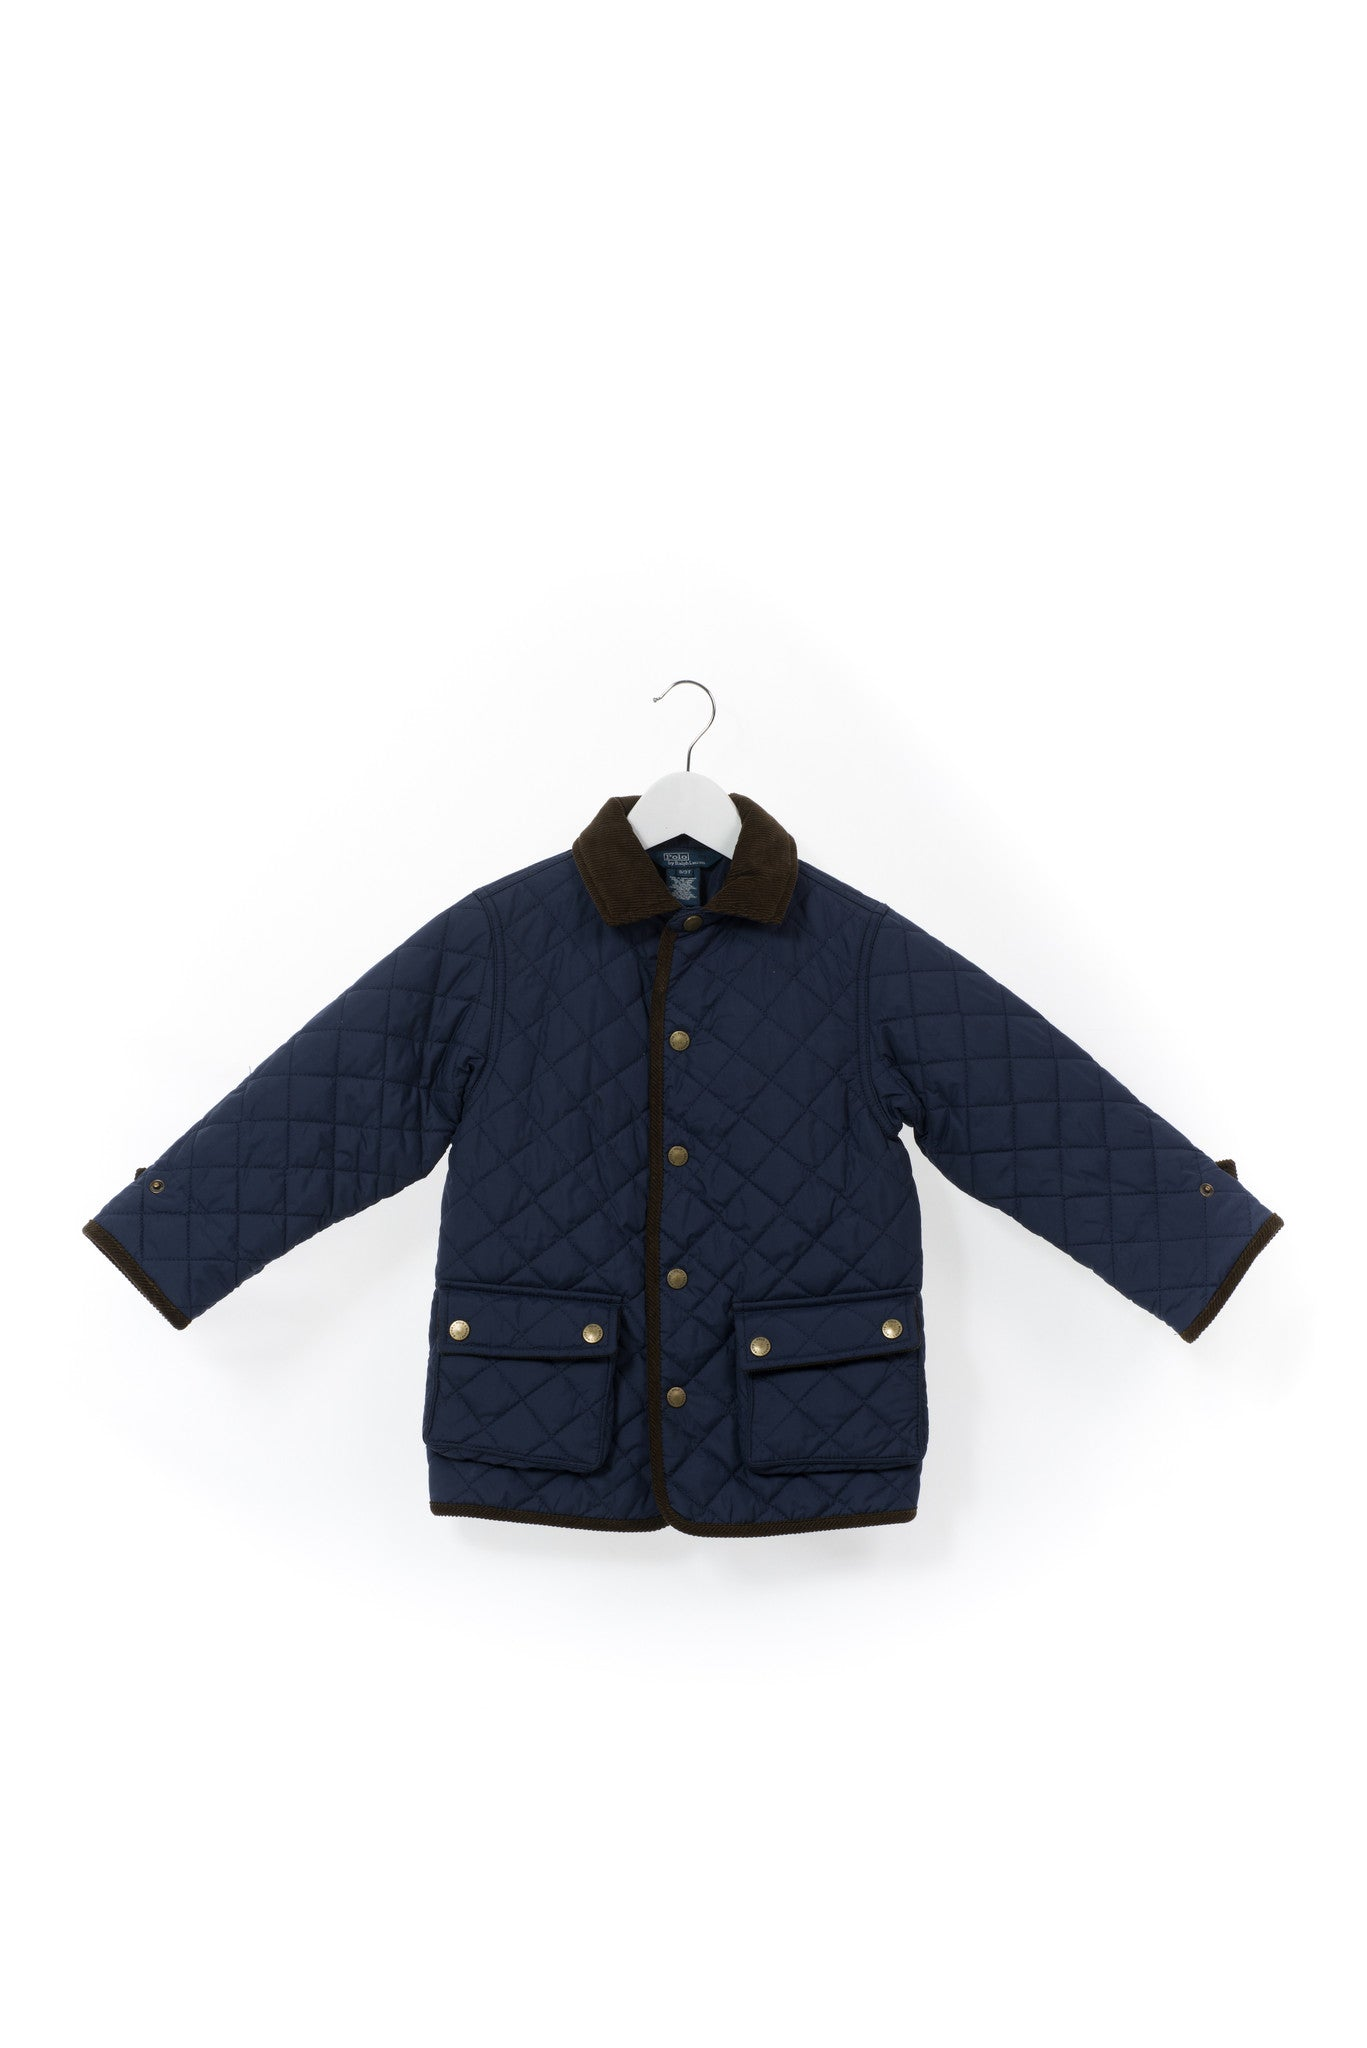 10001178 Polo Ralph Lauren Kids~Quilted Jacket 3T at Retykle